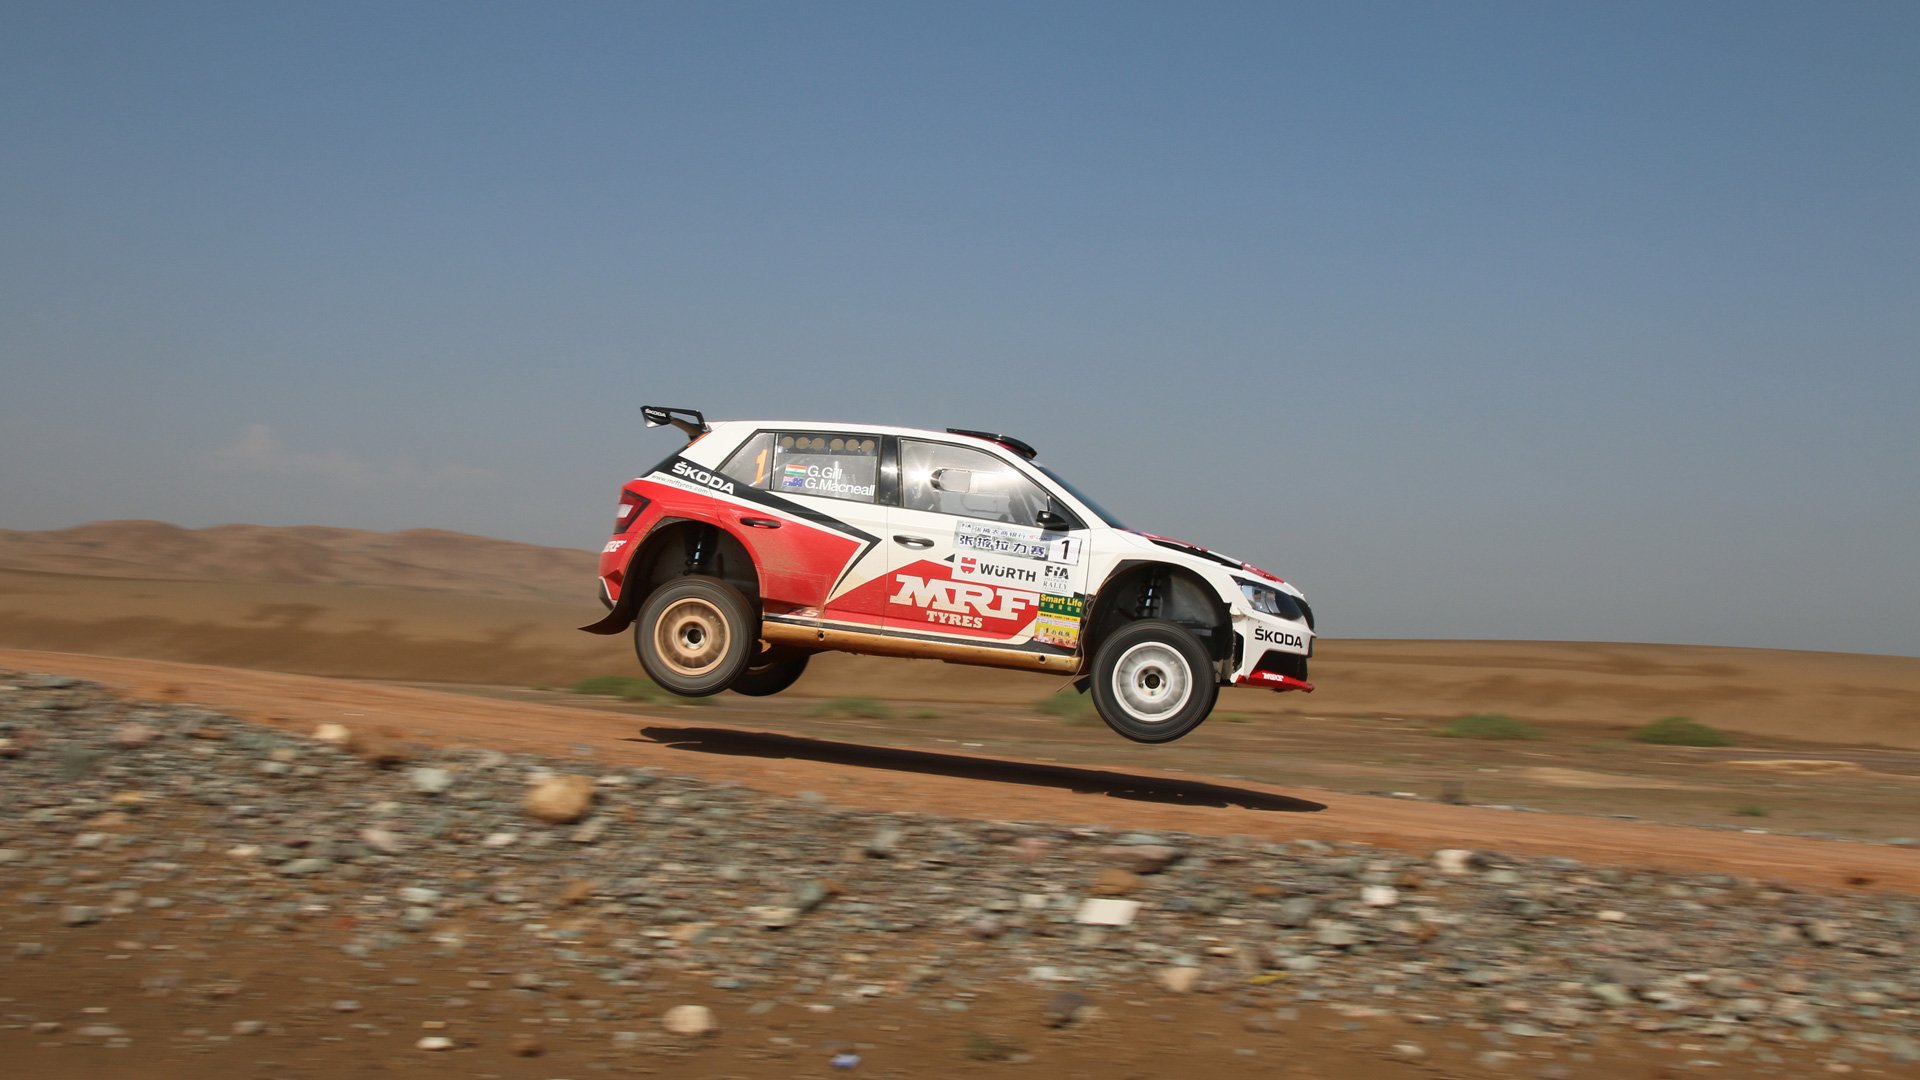 Final Round of APRC Starts in China This Weekend, with ŠKODA Set for 7th Title in a Row